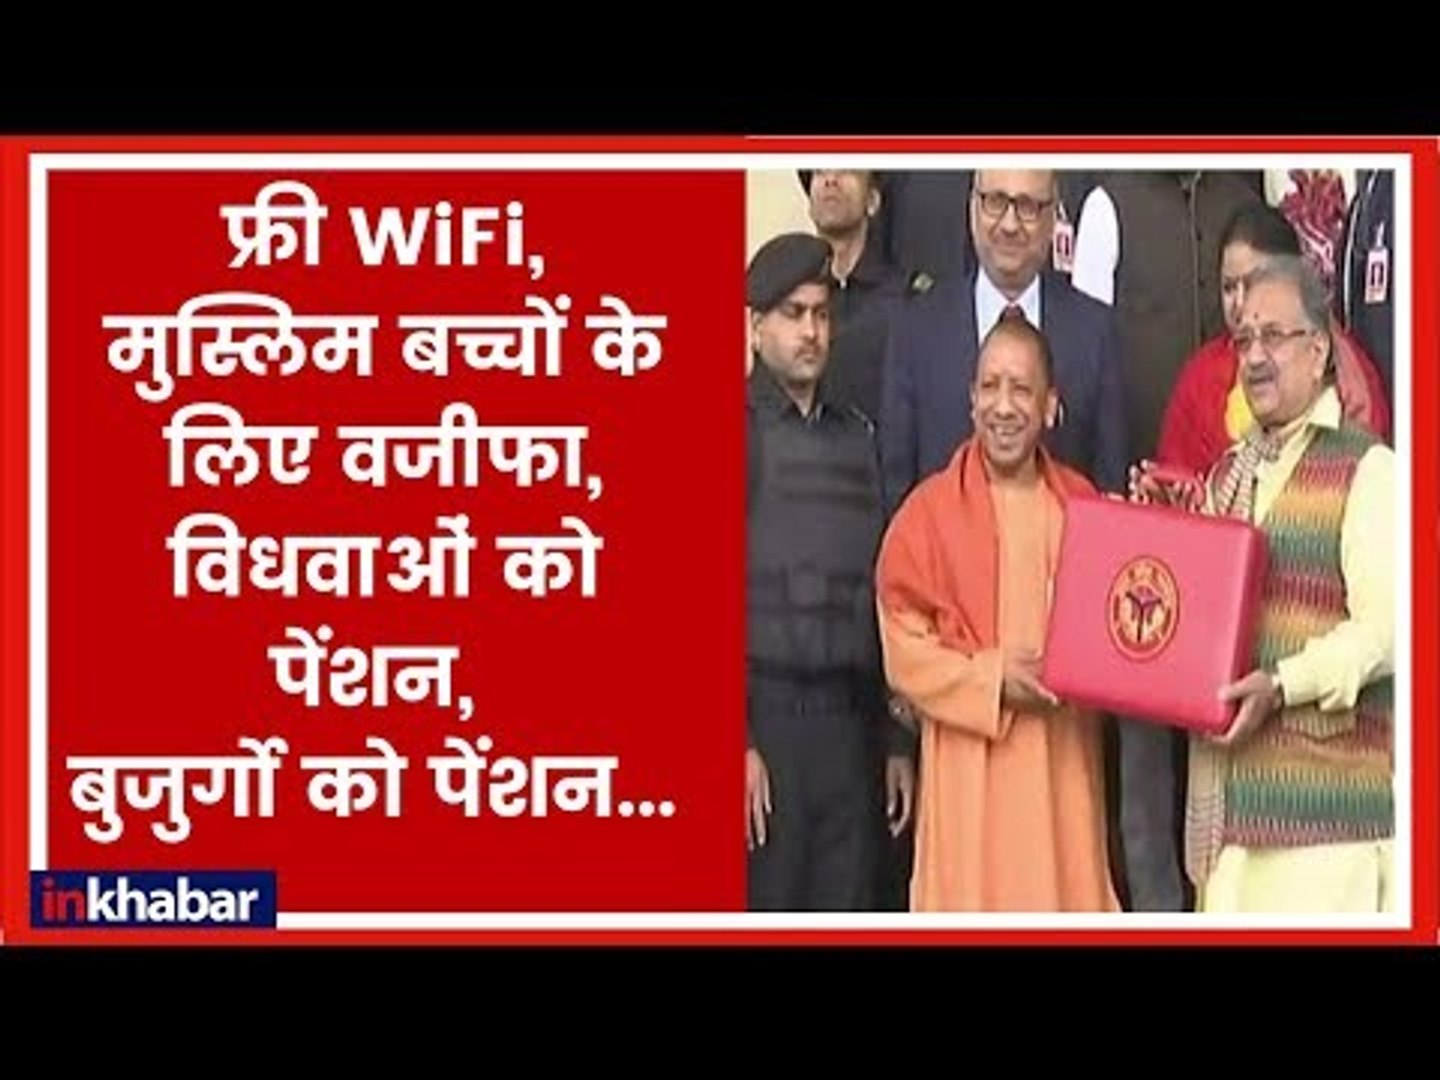 Uttar Pradesh Budget 2019 highlights, Free WiFi, Old Age and Farmers Pension Scheme, Ayodhya Airport